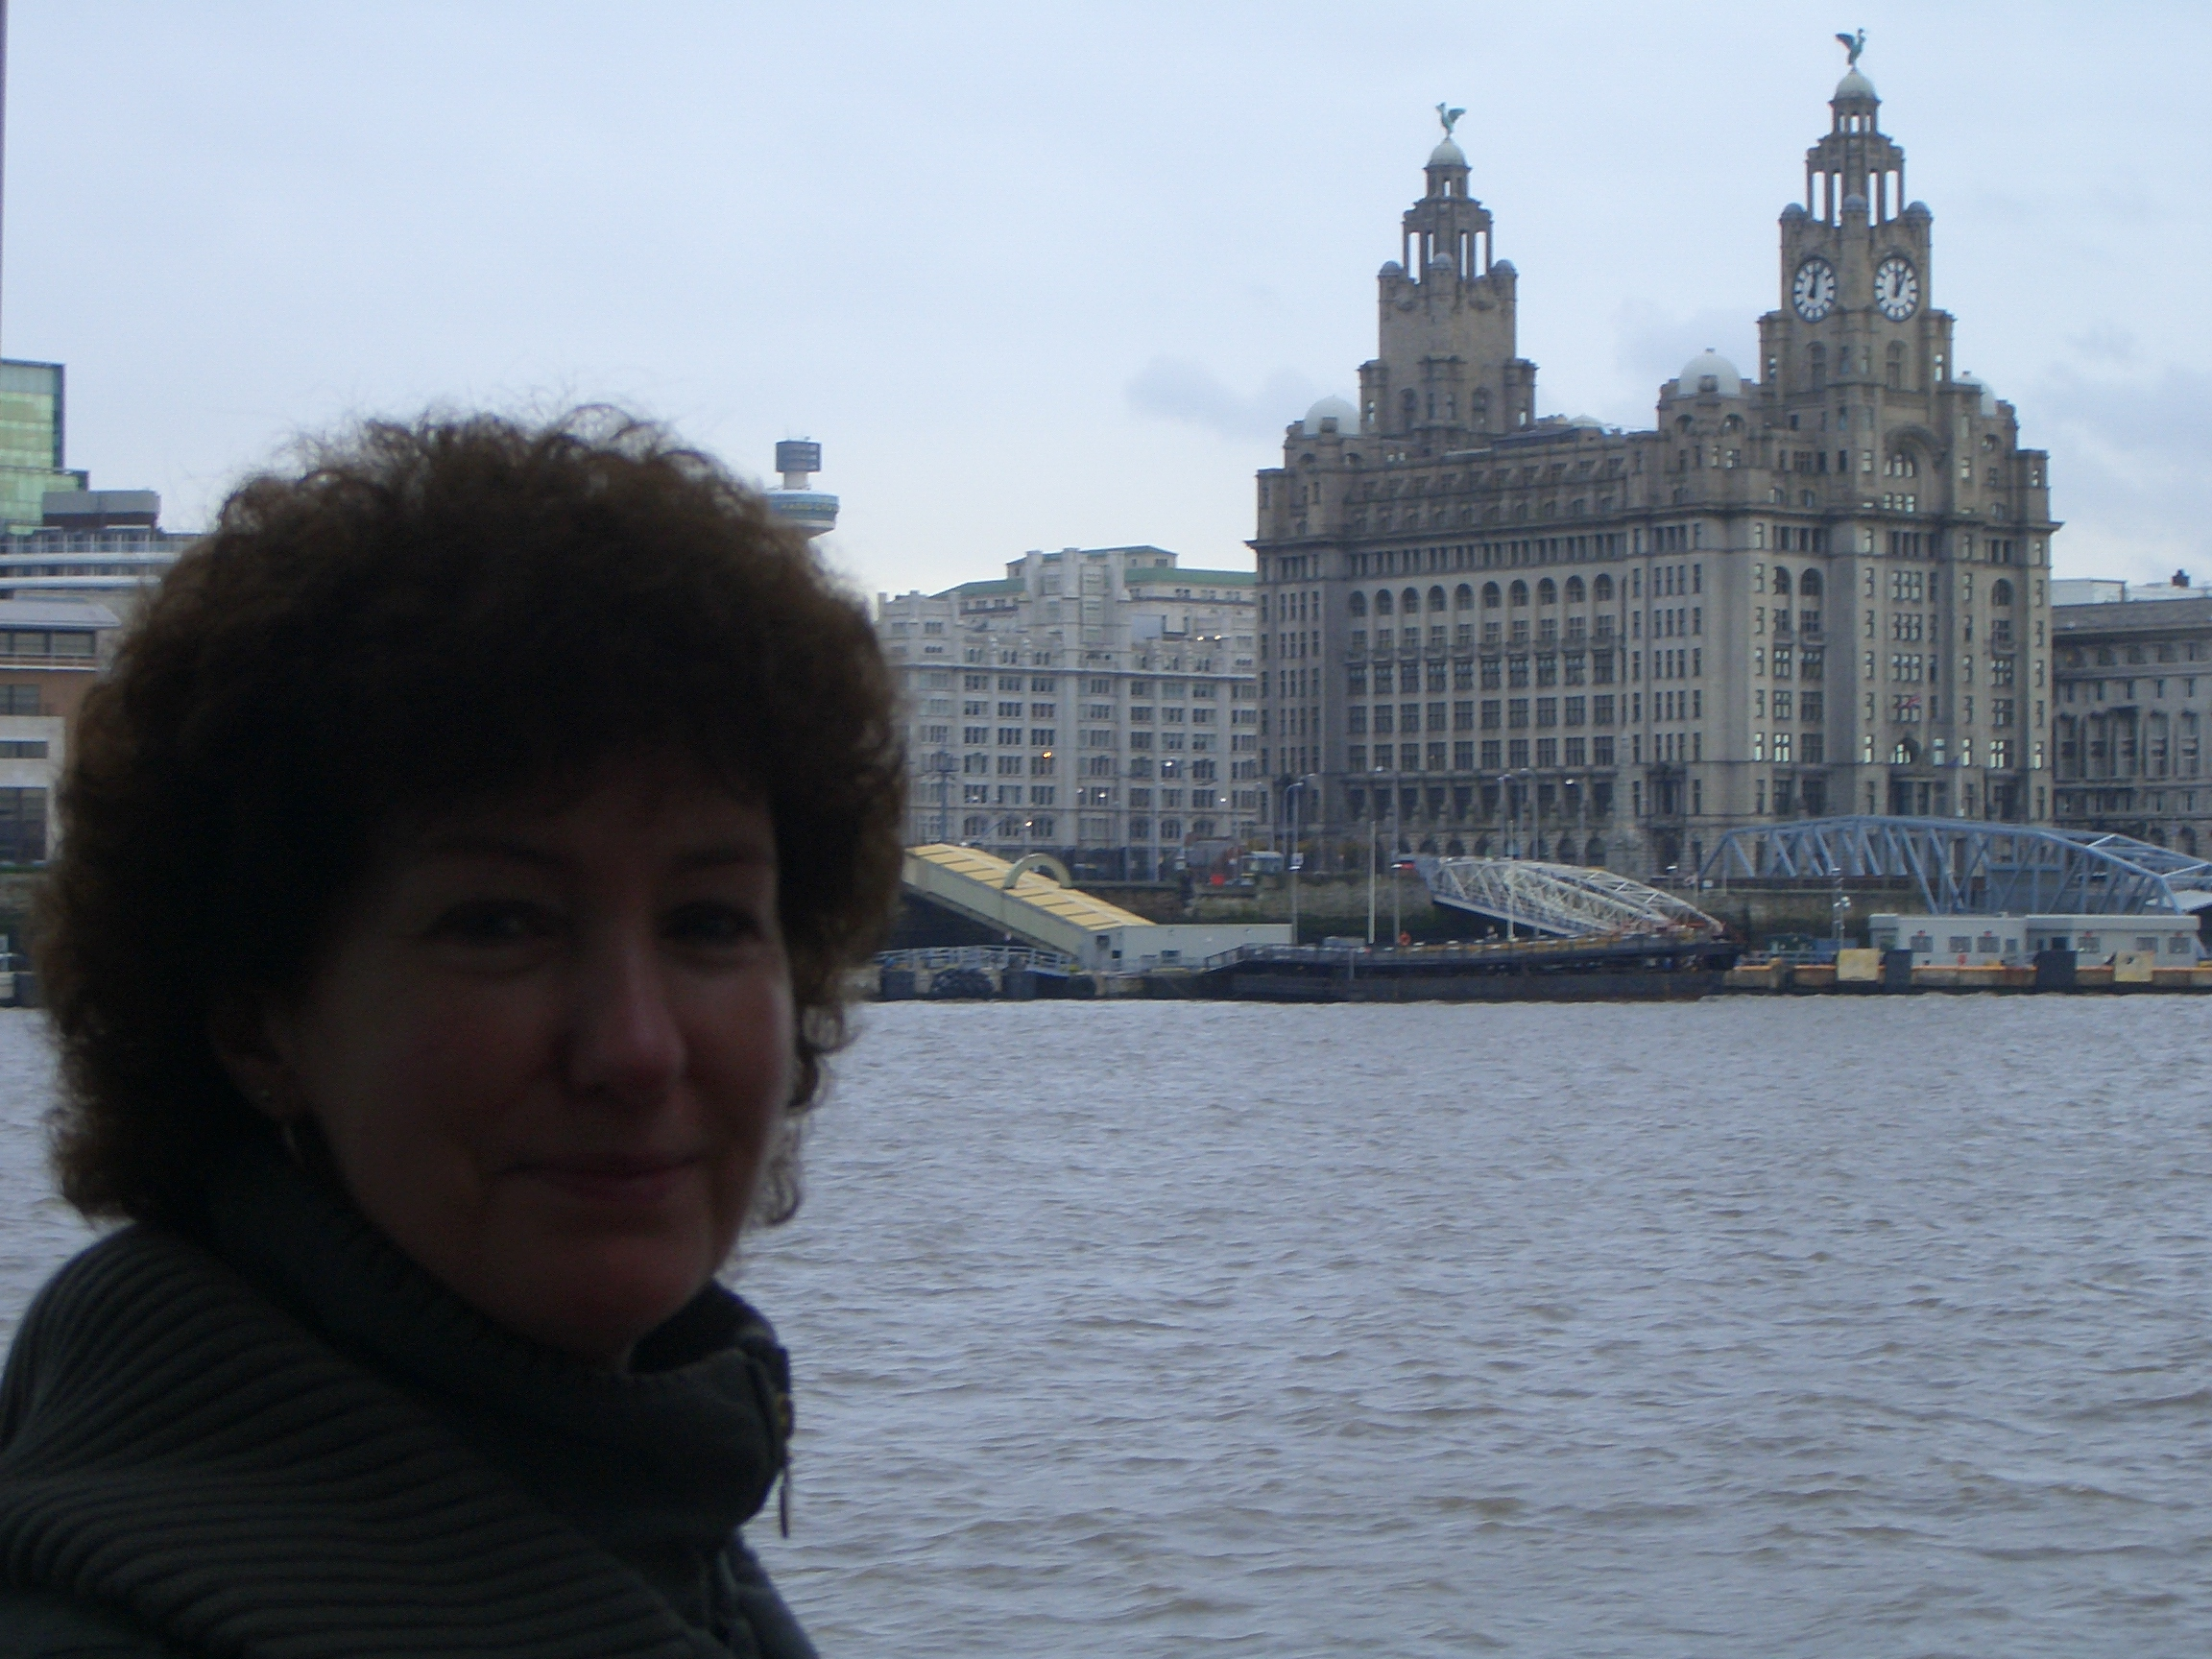 Ferry cross Mersey